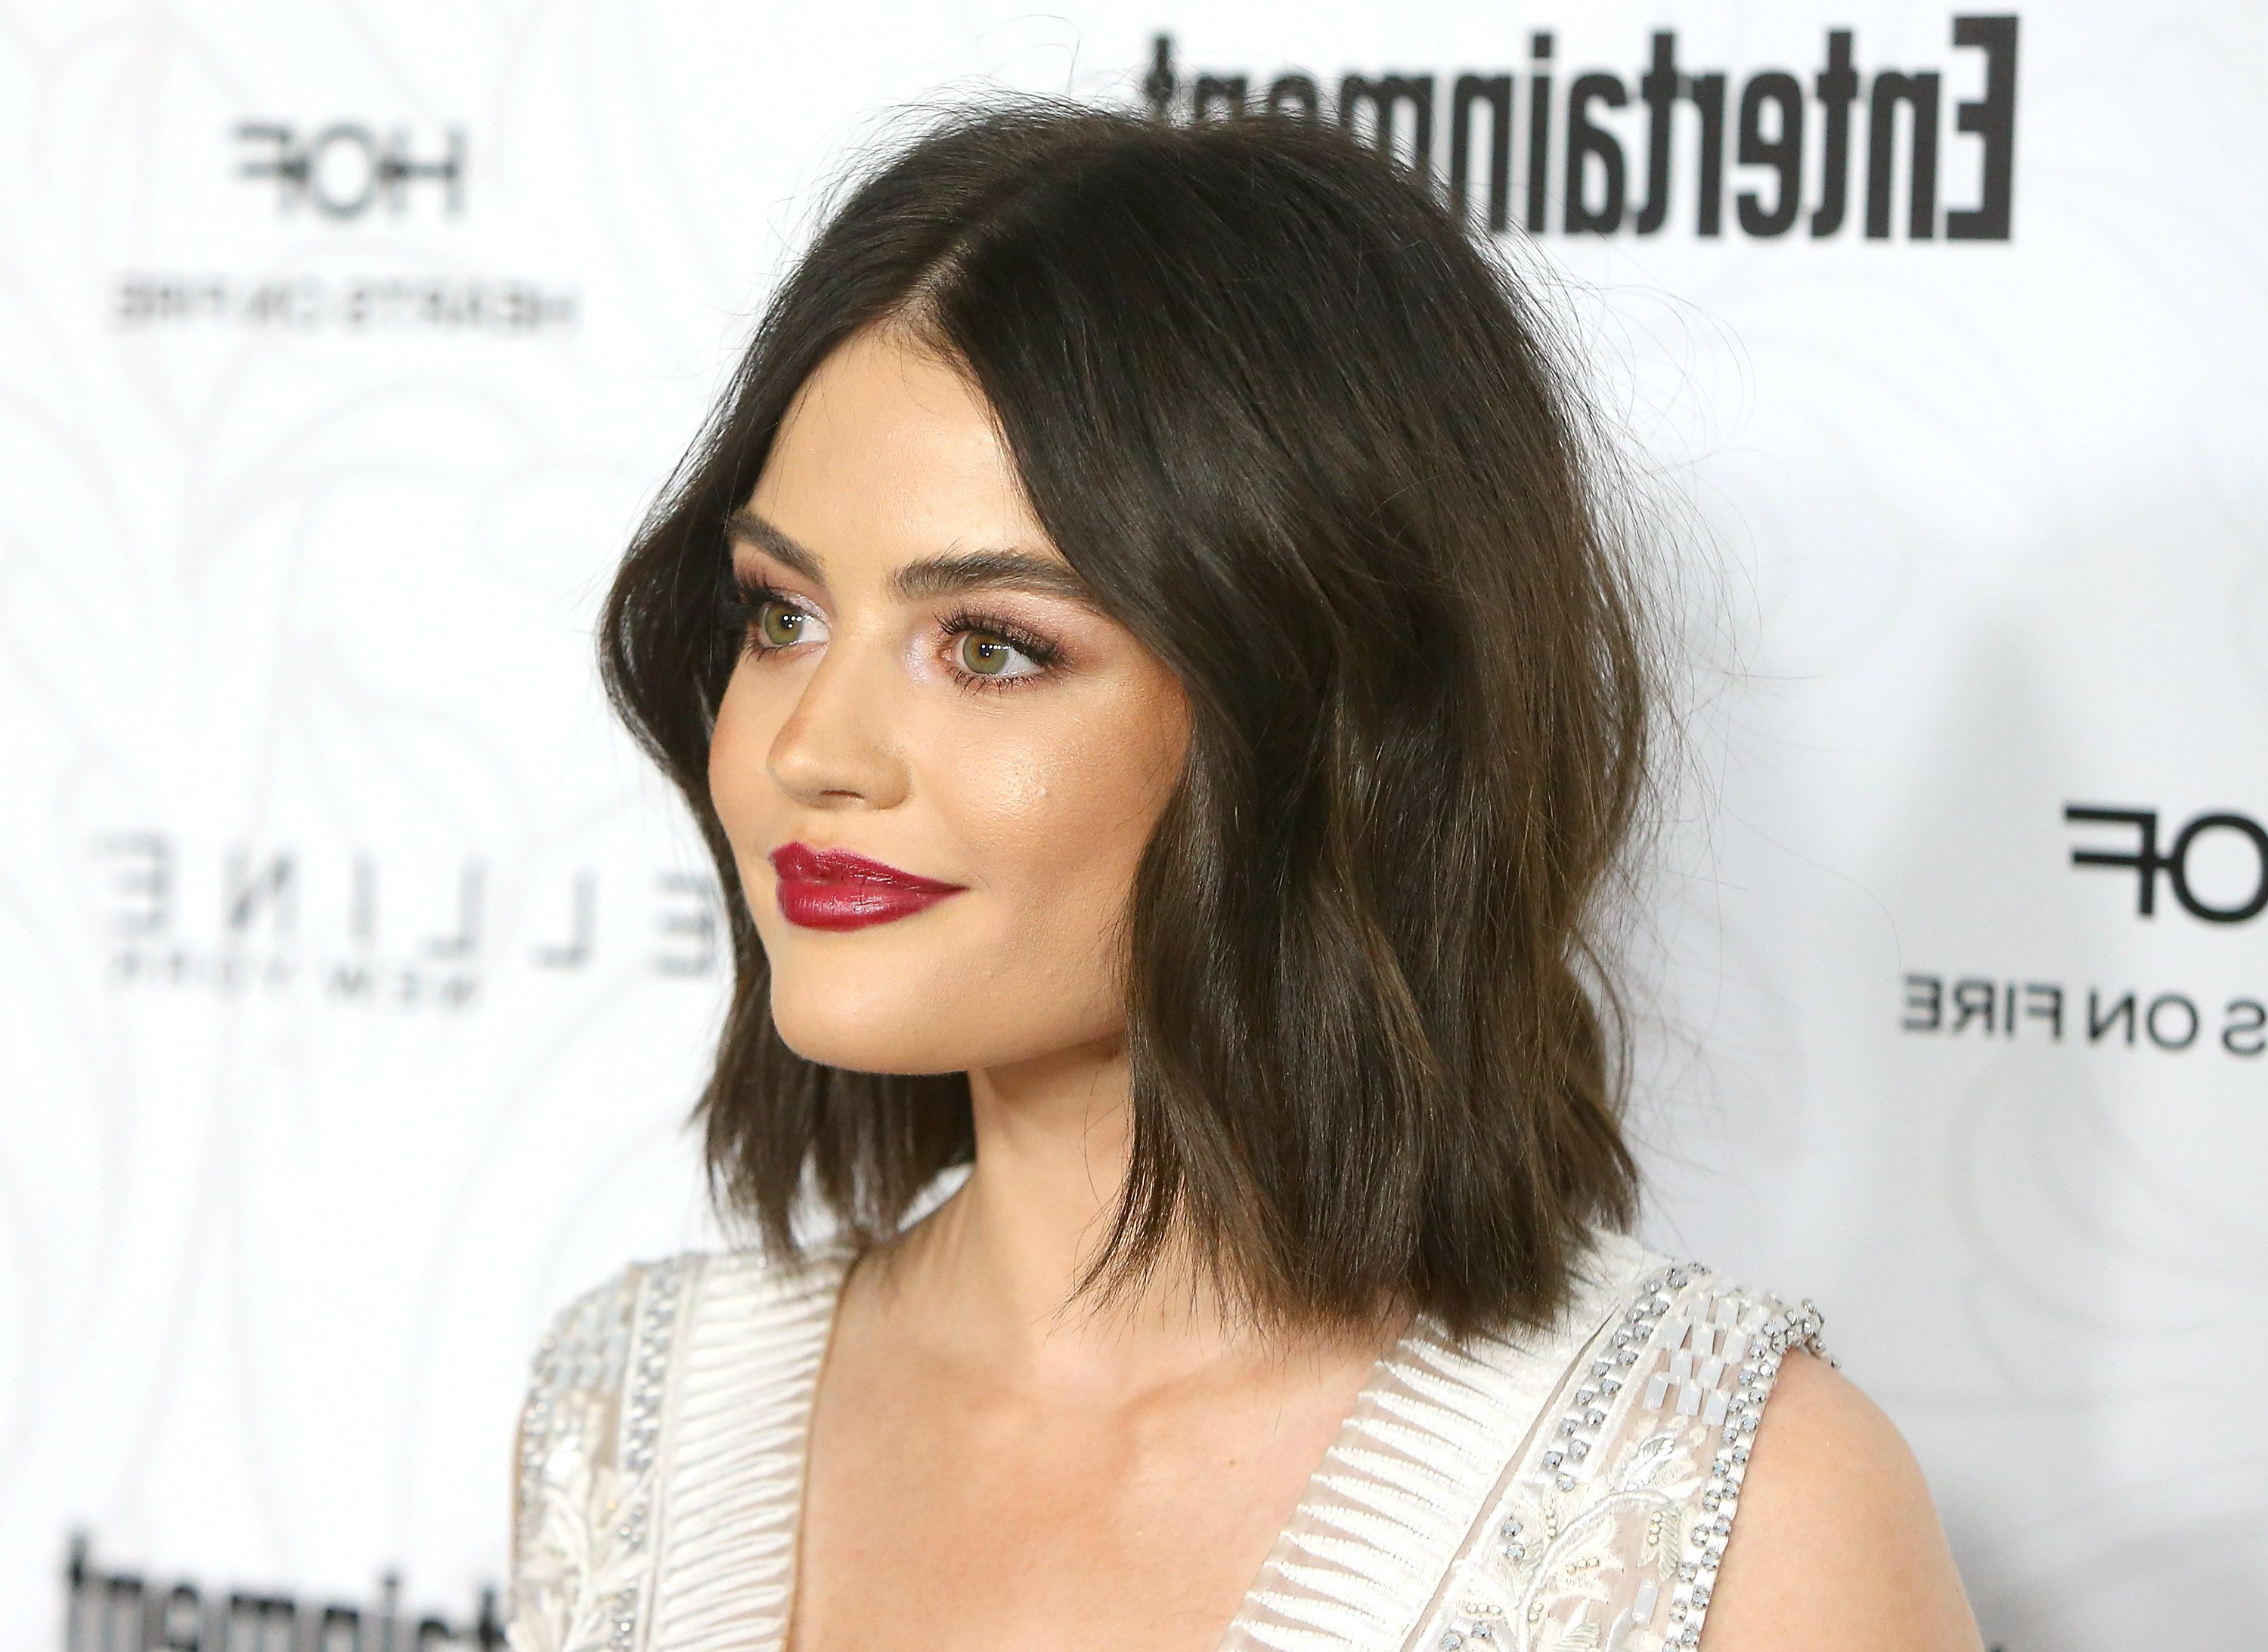 Bob Hairstyles For 2018 – 53 Short Haircut Trends To Try Now Within Short Haircuts Bobs Crops (View 19 of 26)